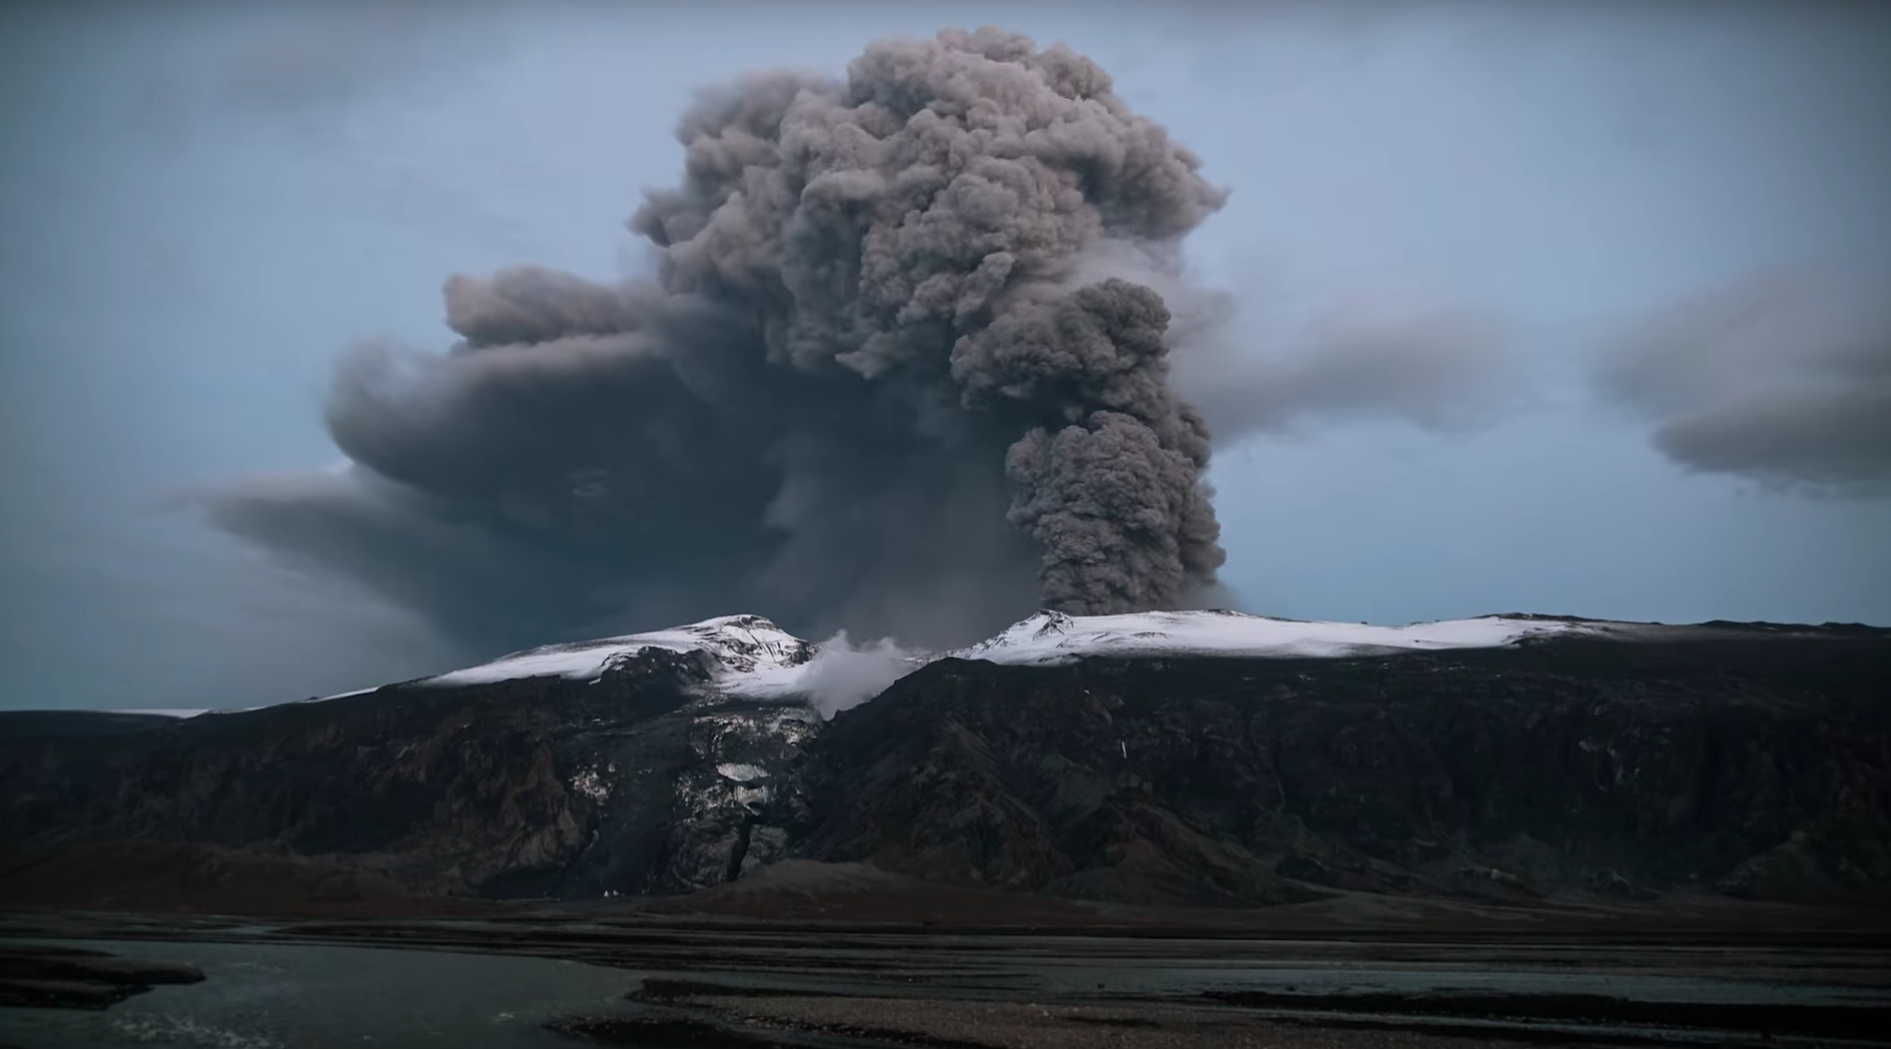 A photo of the  Eyjafjallajökull volcano erupting in 2010, producing a large plume of volcanic ash.